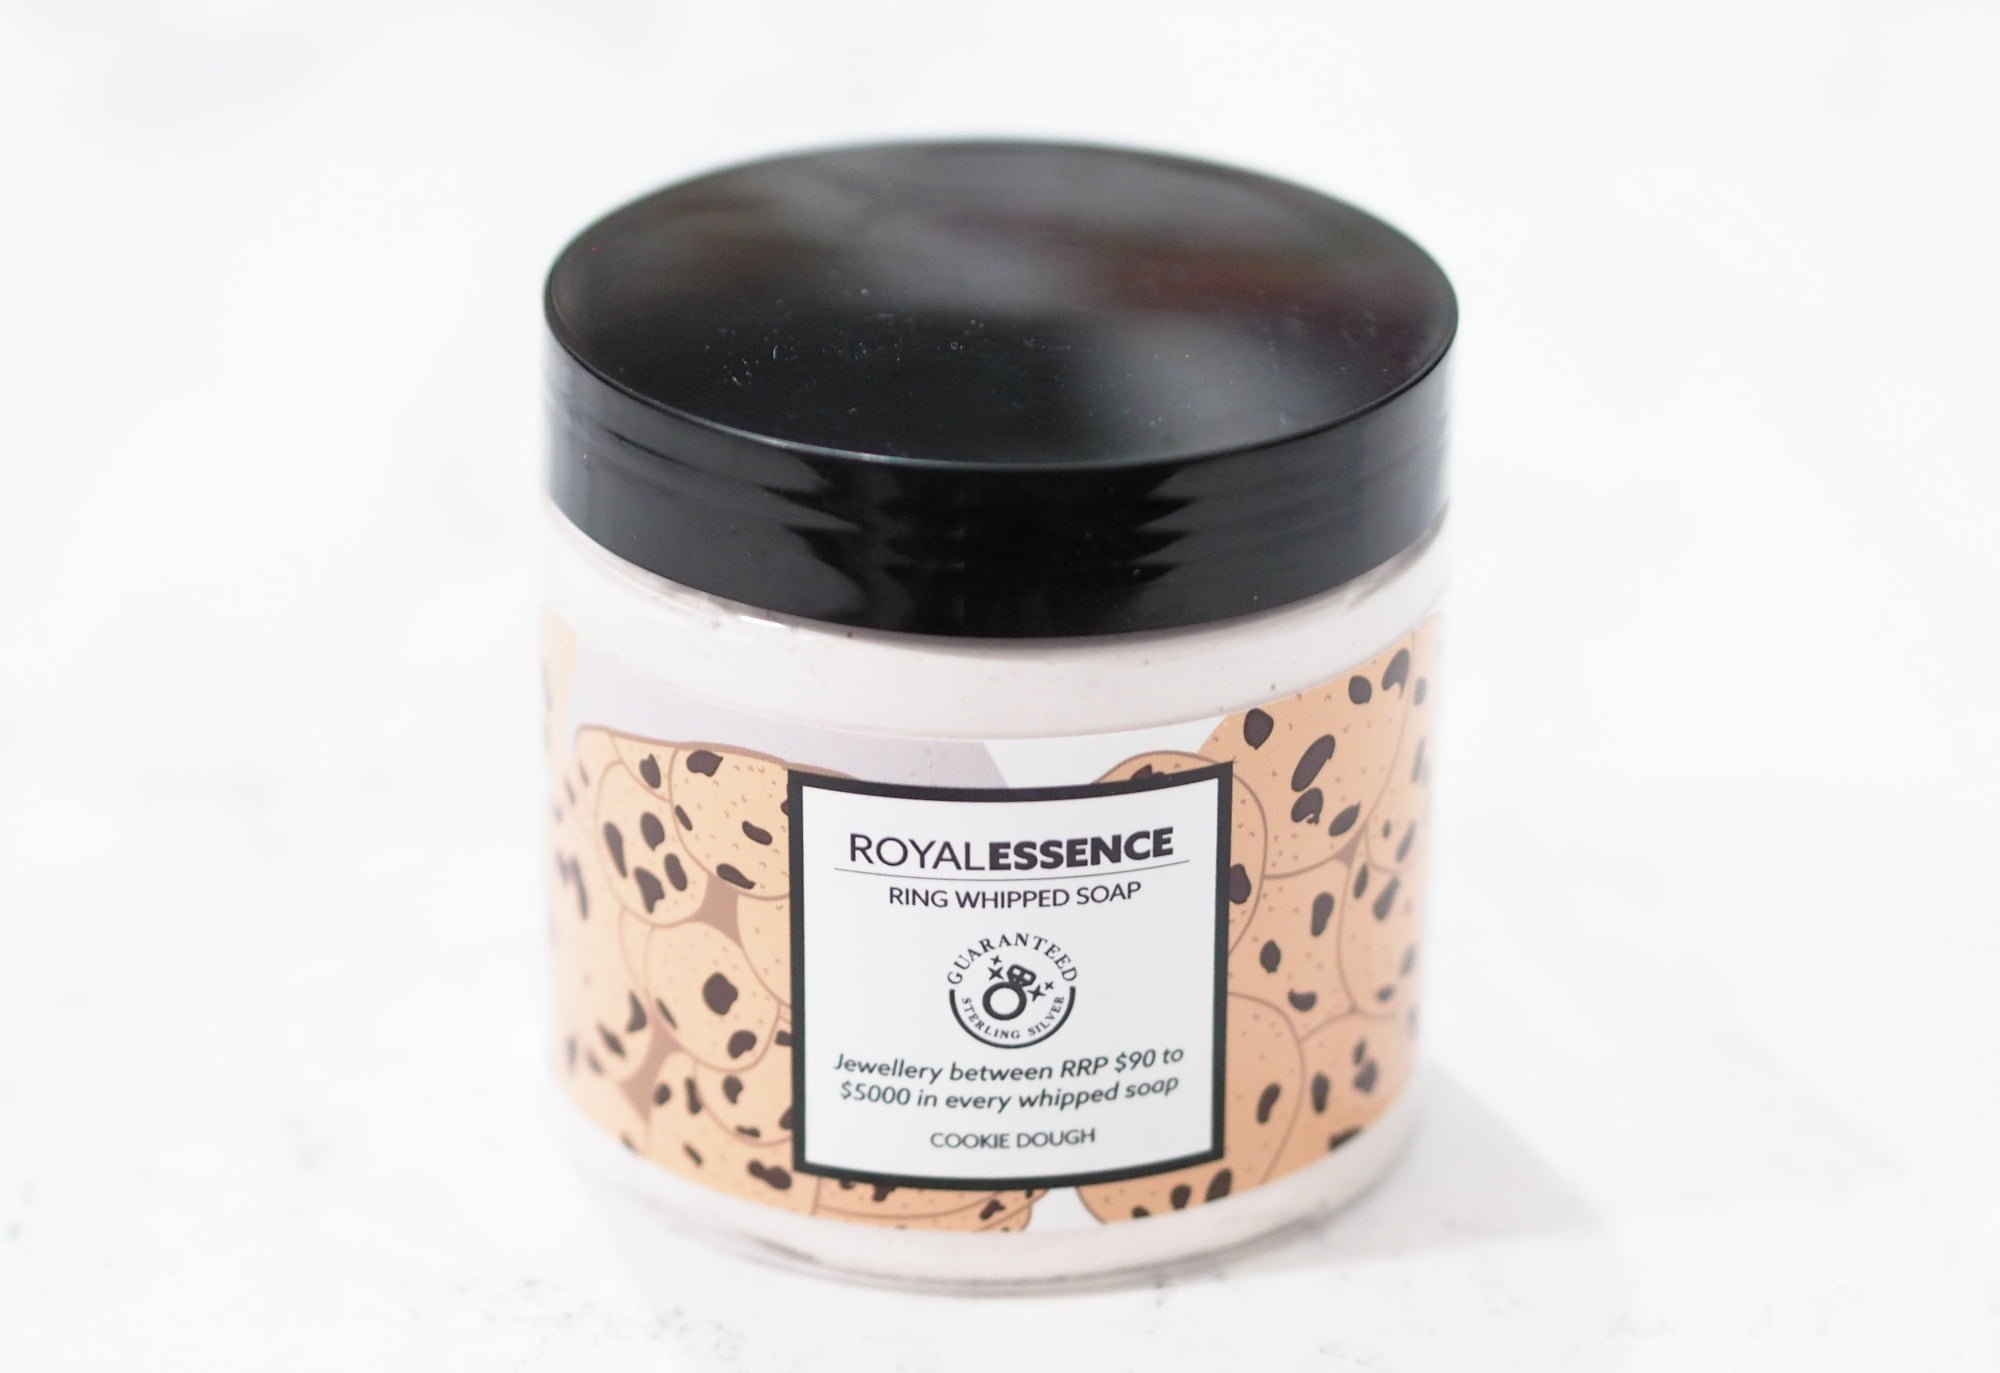 Royal Essence Jewellery Cookie Dough Whipped Soap PLUS GIVEAWAY!